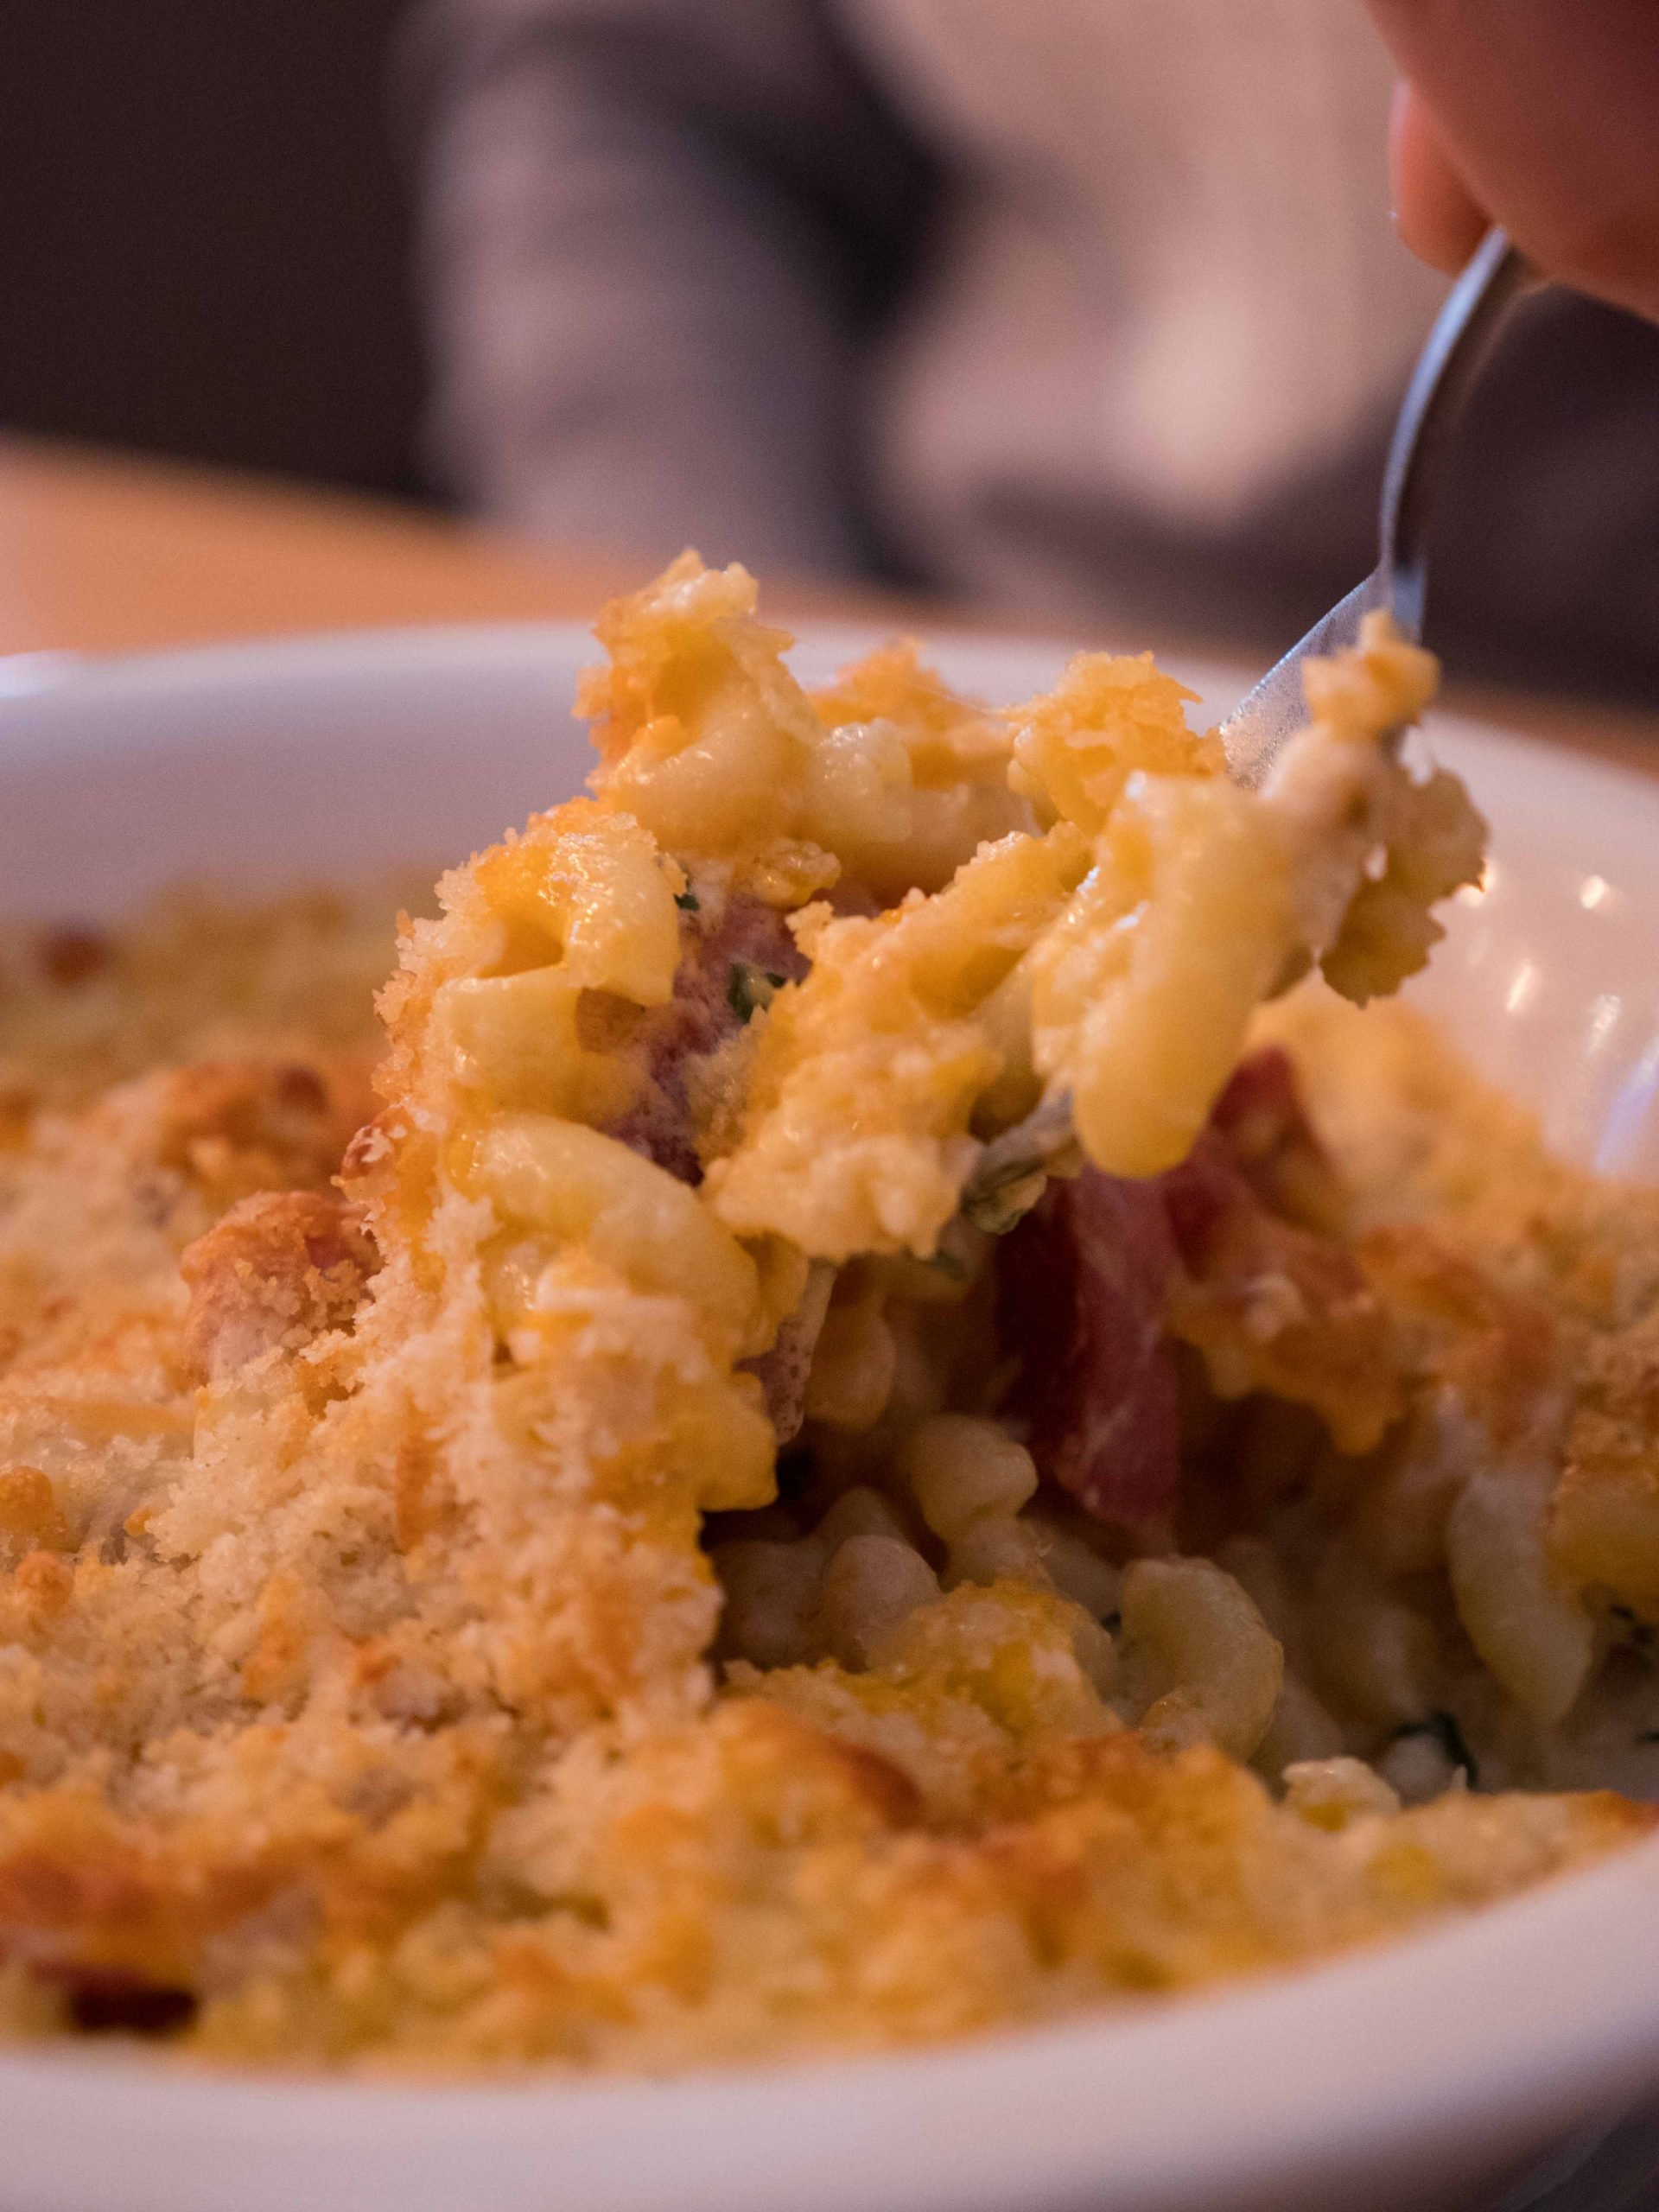 Mac n cheese from collins brewhouse